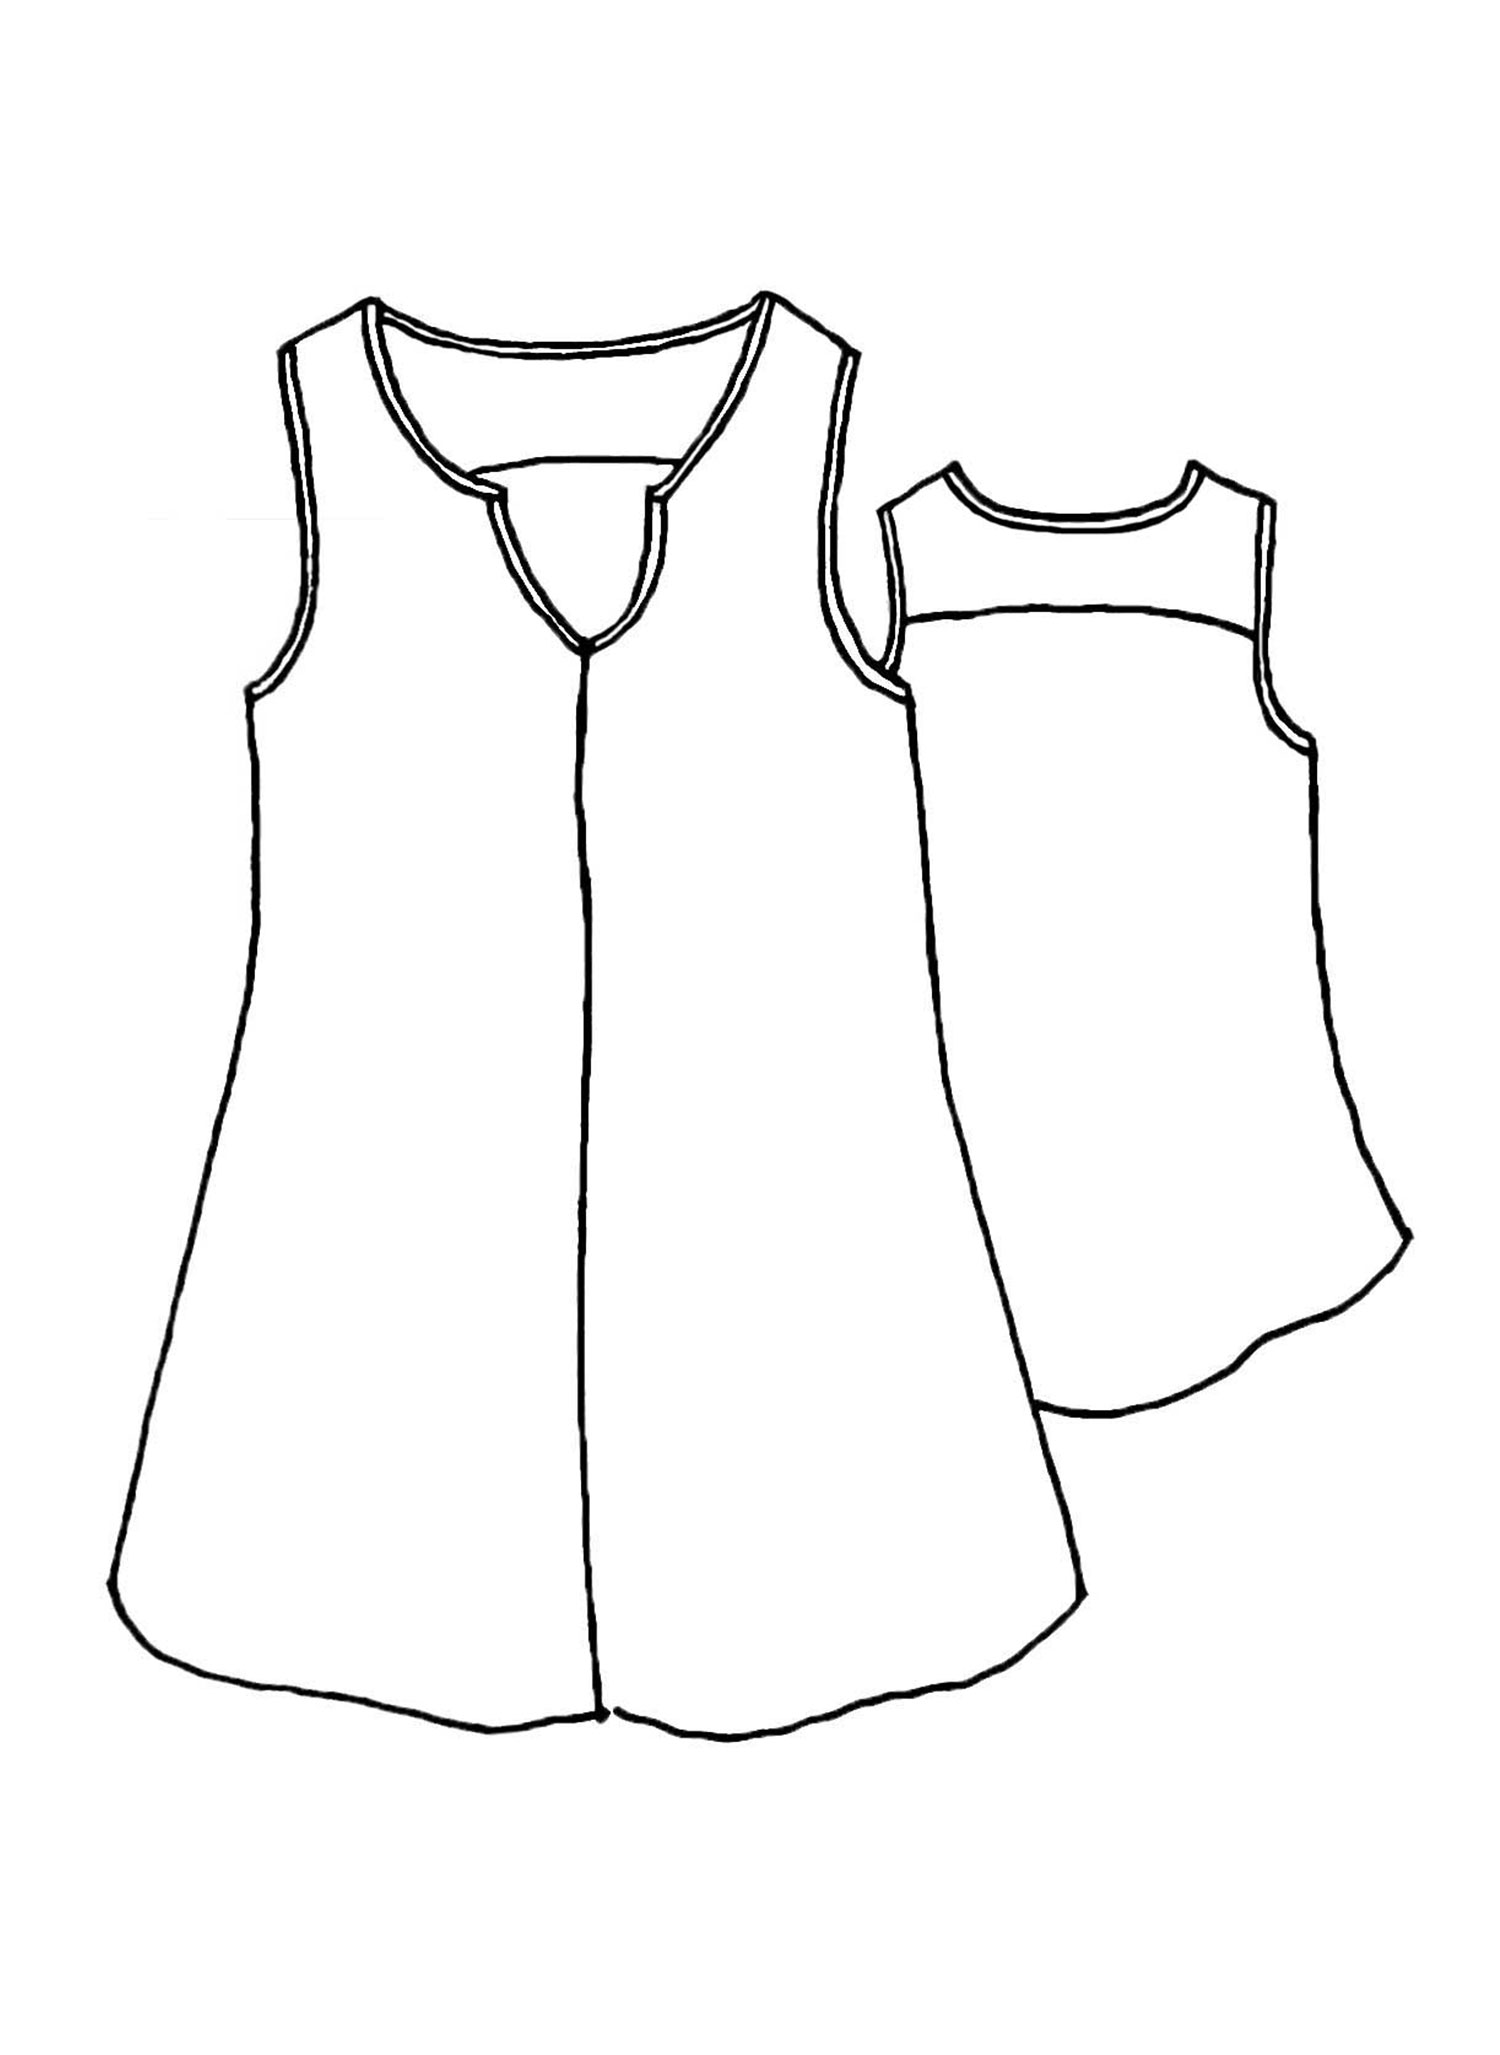 True Tunic sketch image